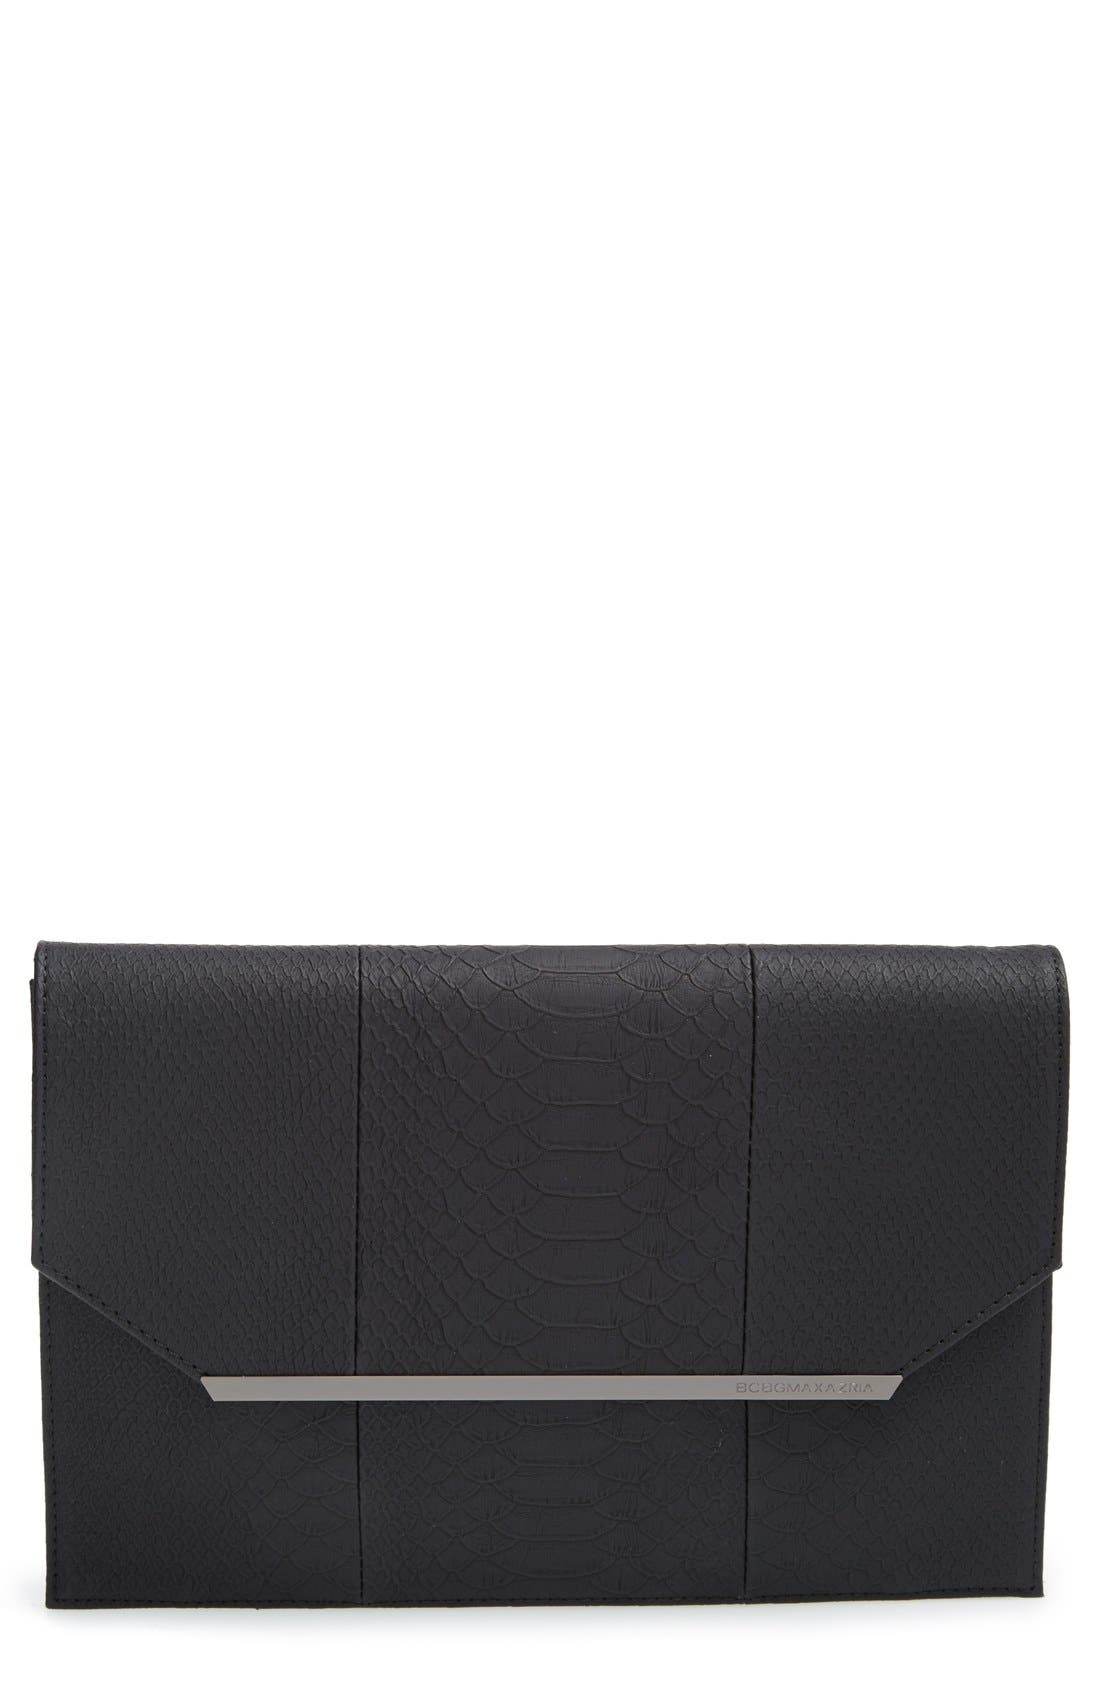 Alternate Image 1 Selected - BCBGMAXAZRIA 'Kelly' Envelope Clutch